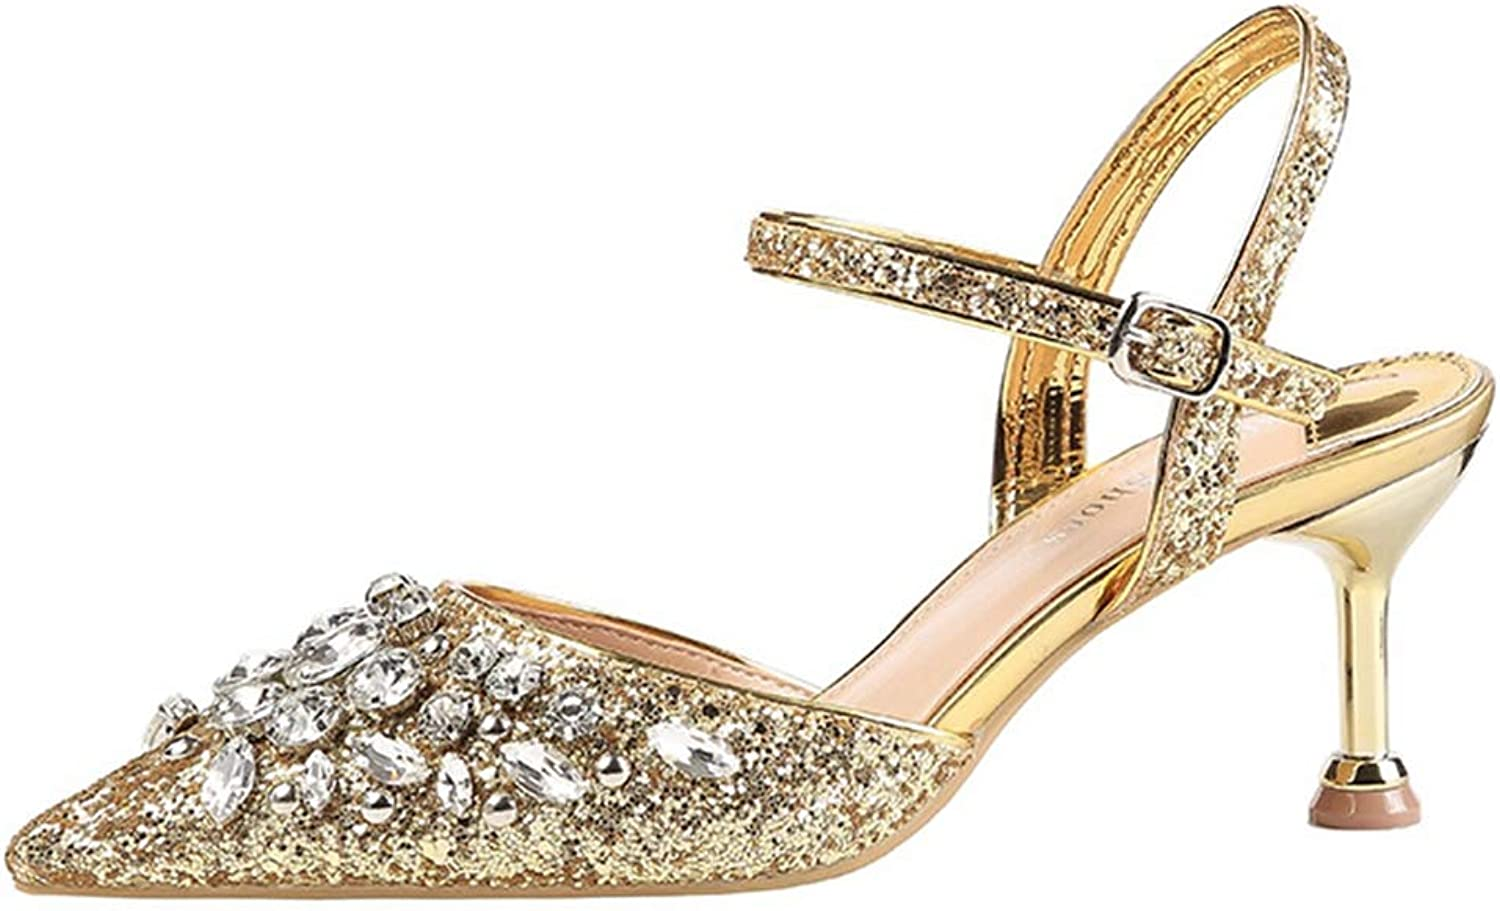 CYBLING Women's Glitter Slingback Pumps Mid Kitten Heels Ladies Pointed Toe Sandals Dress Party Weddding shoes